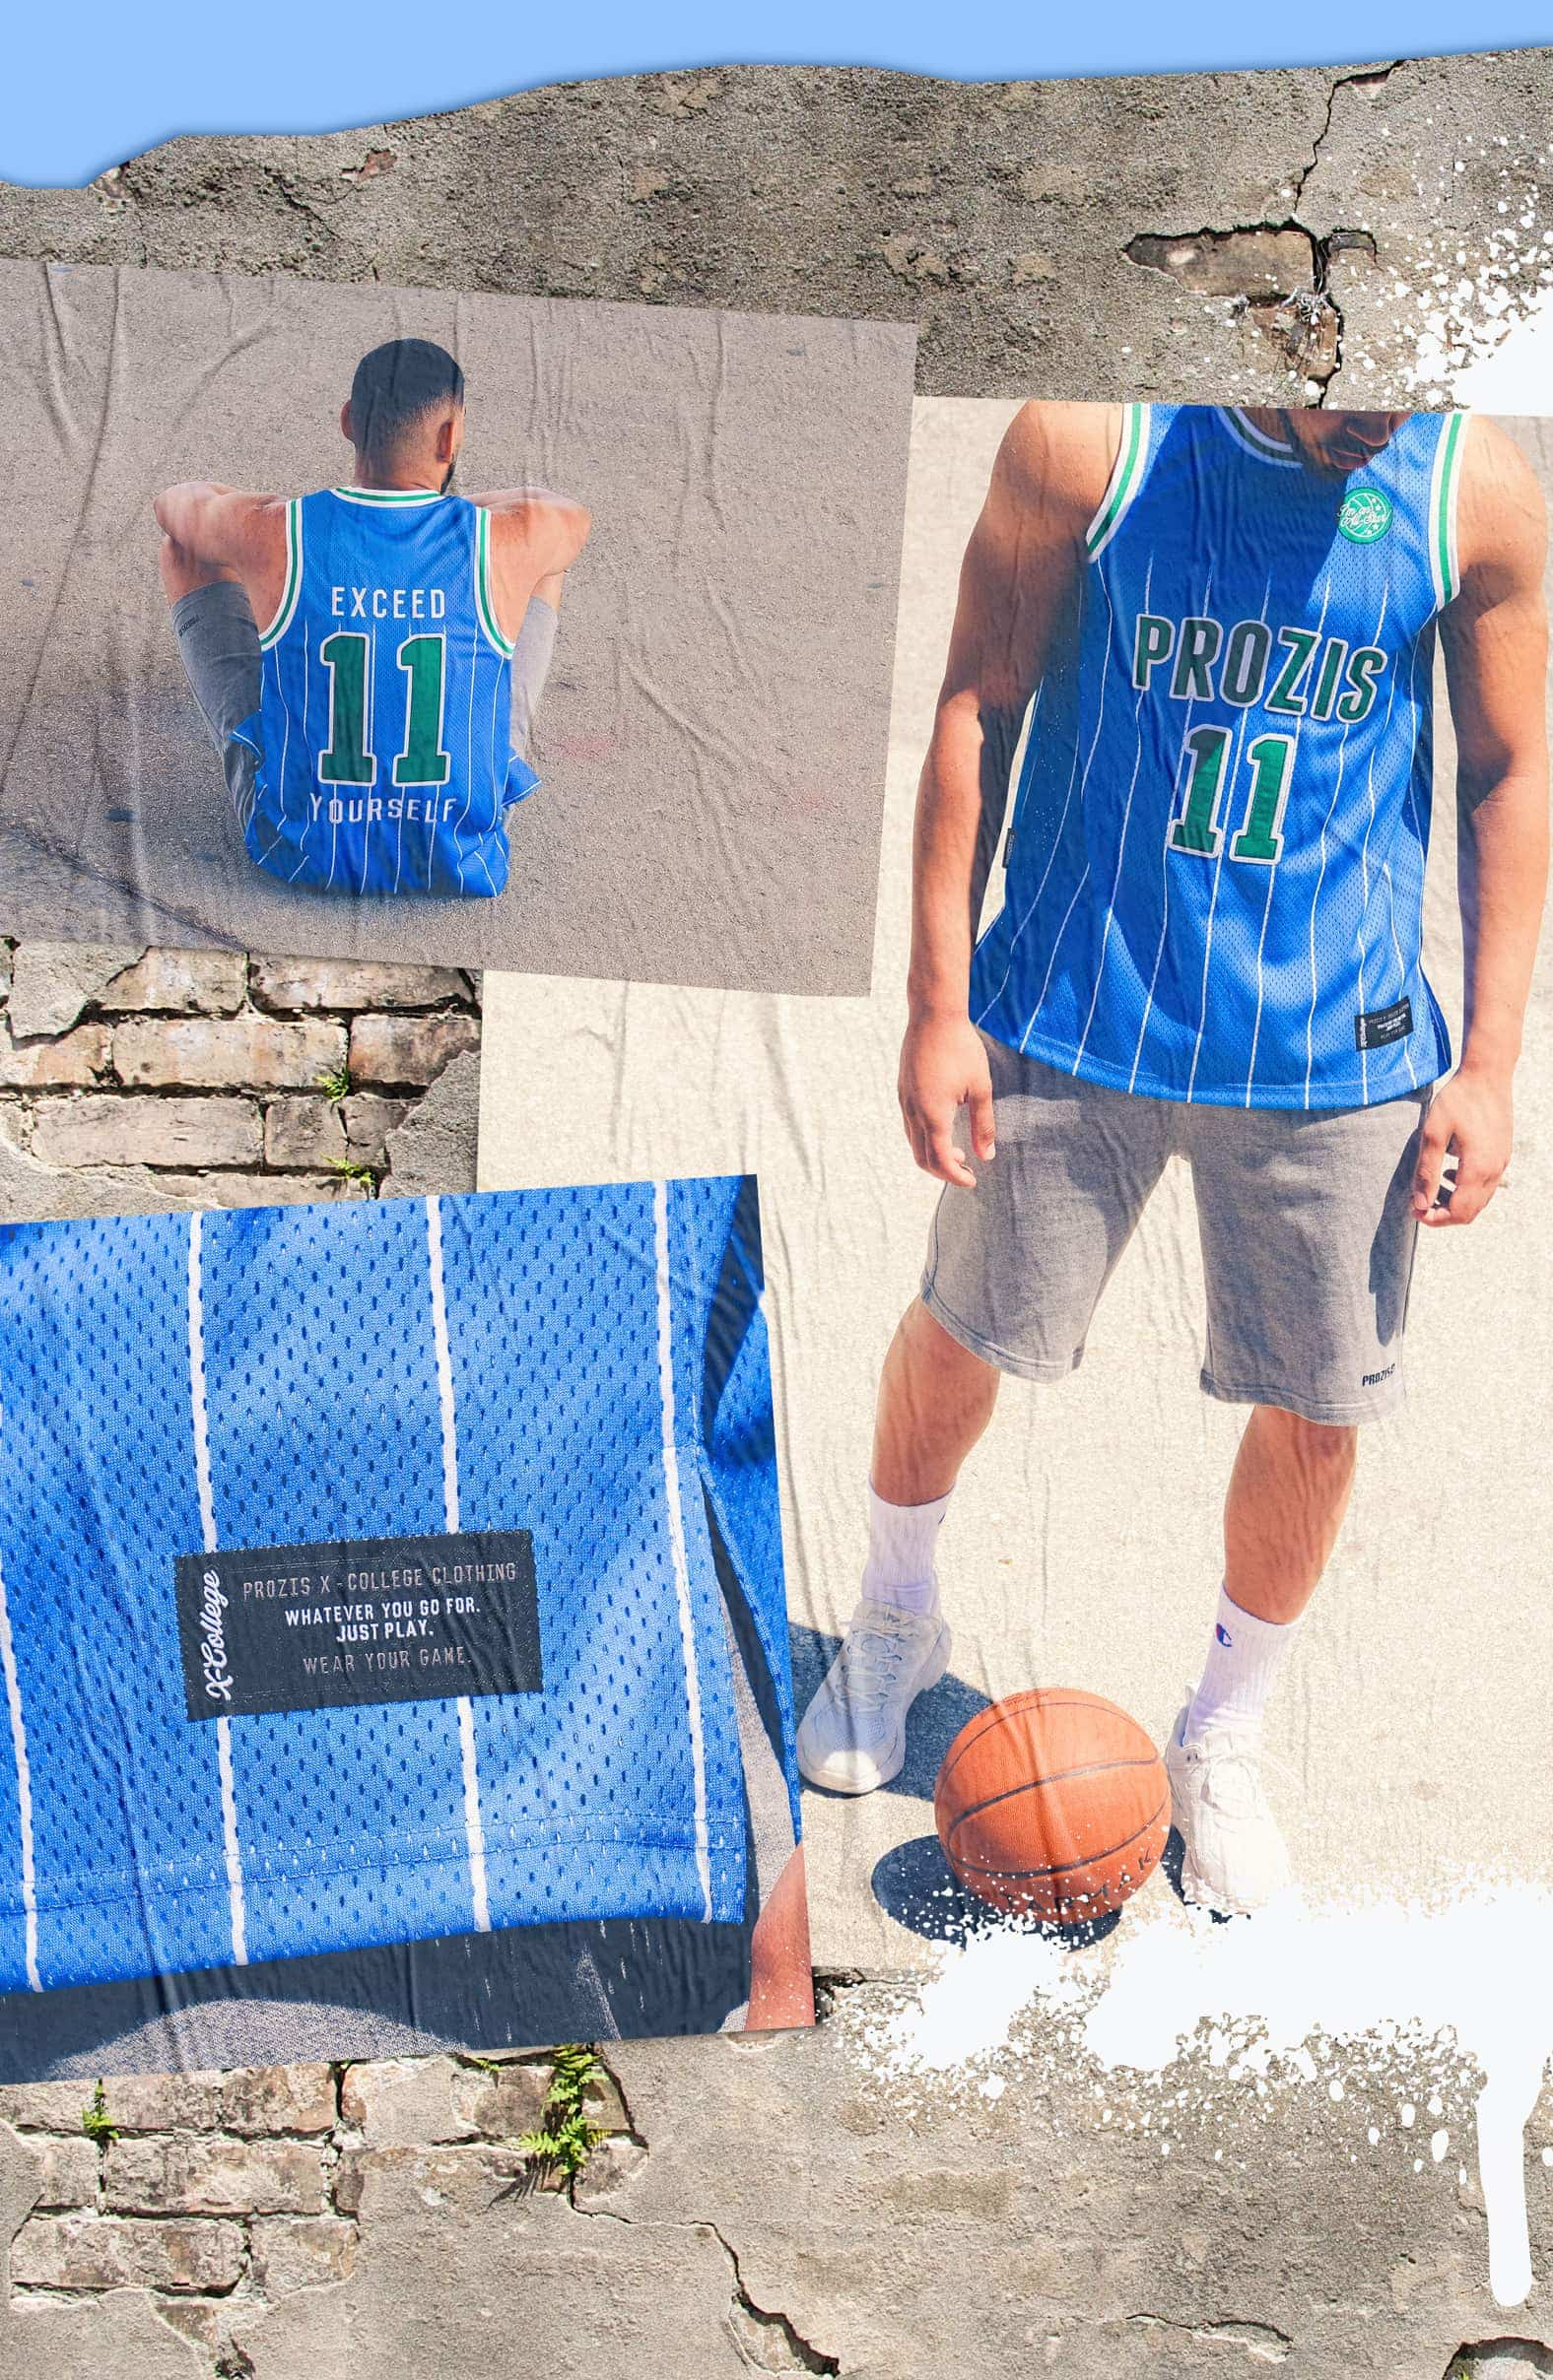 X-College Basketball Jersey